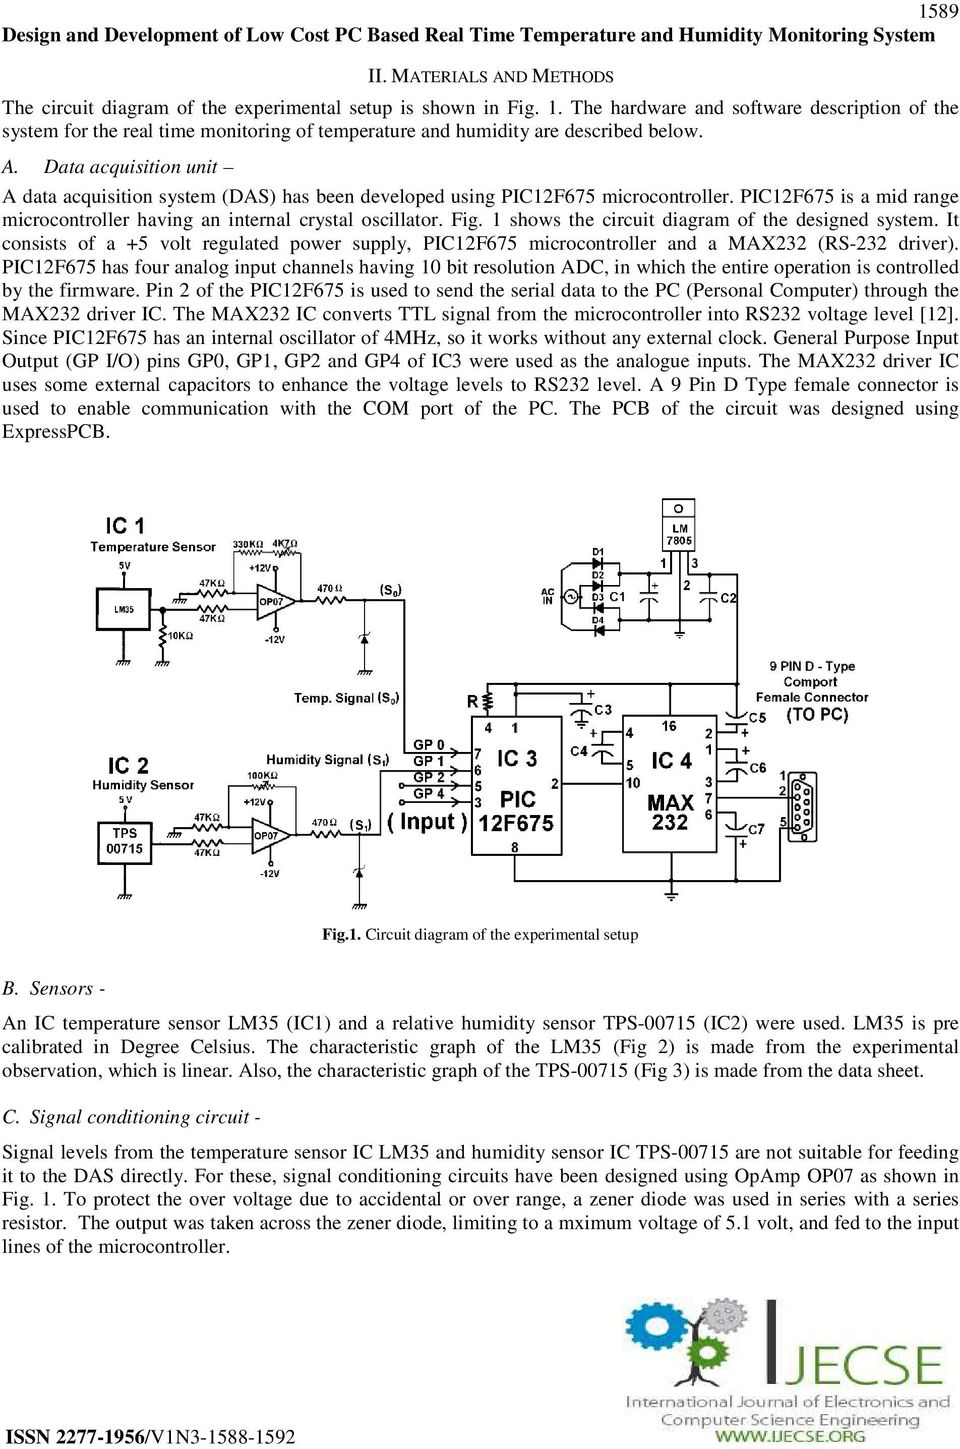 International Journal Of Electronics And Computer Science Logic Psu With Overvoltage Protection By Ic 7805 Data Acquisition Unit A System Das Has Been Developed Using Pic12f675 Microcontroller